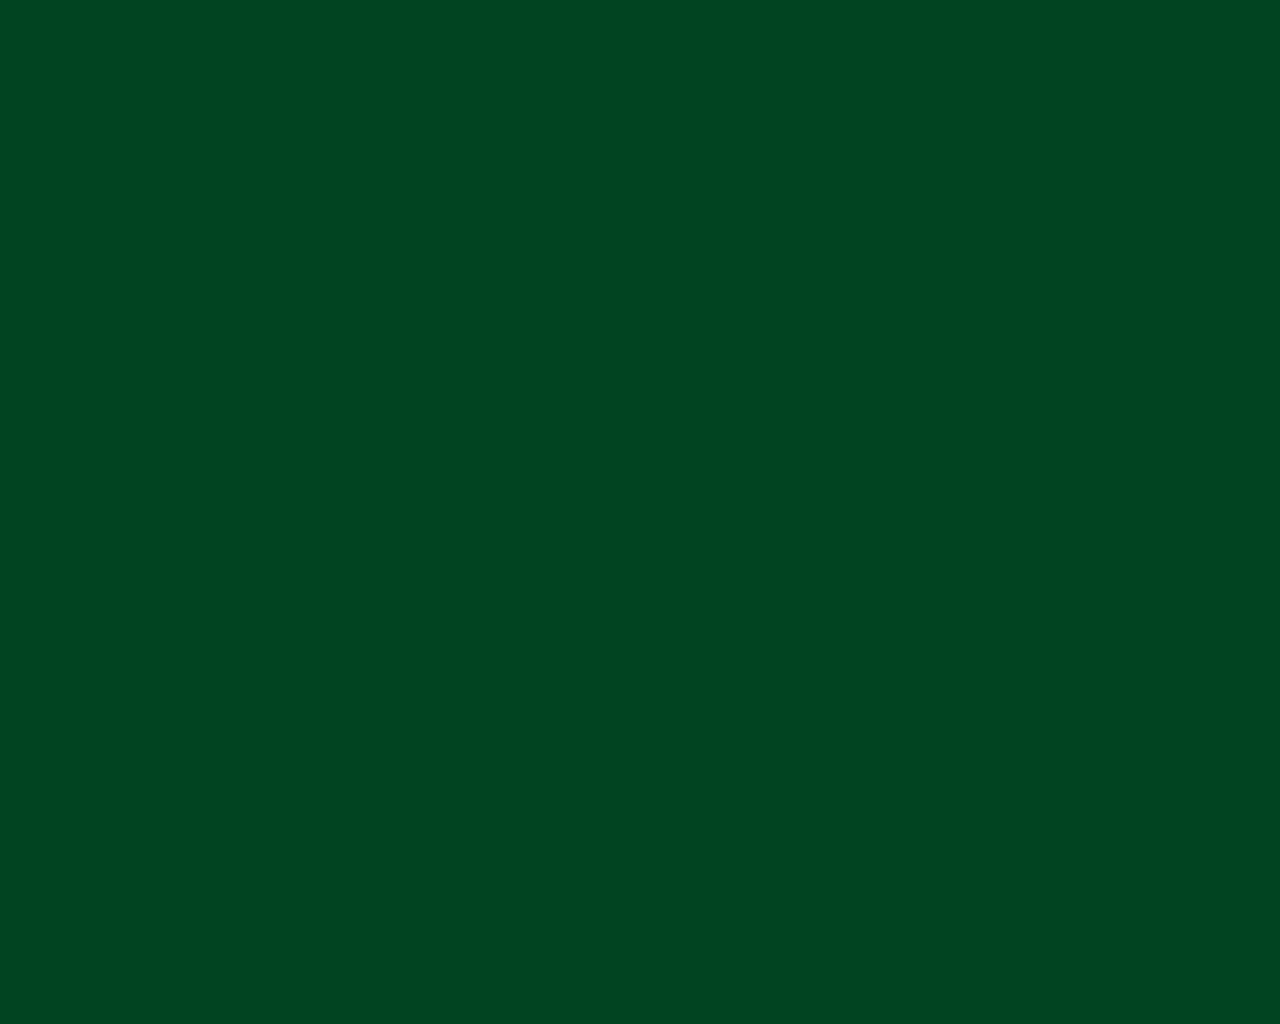 1280x1024 resolution Forest Green Traditional solid color background 1280x1024